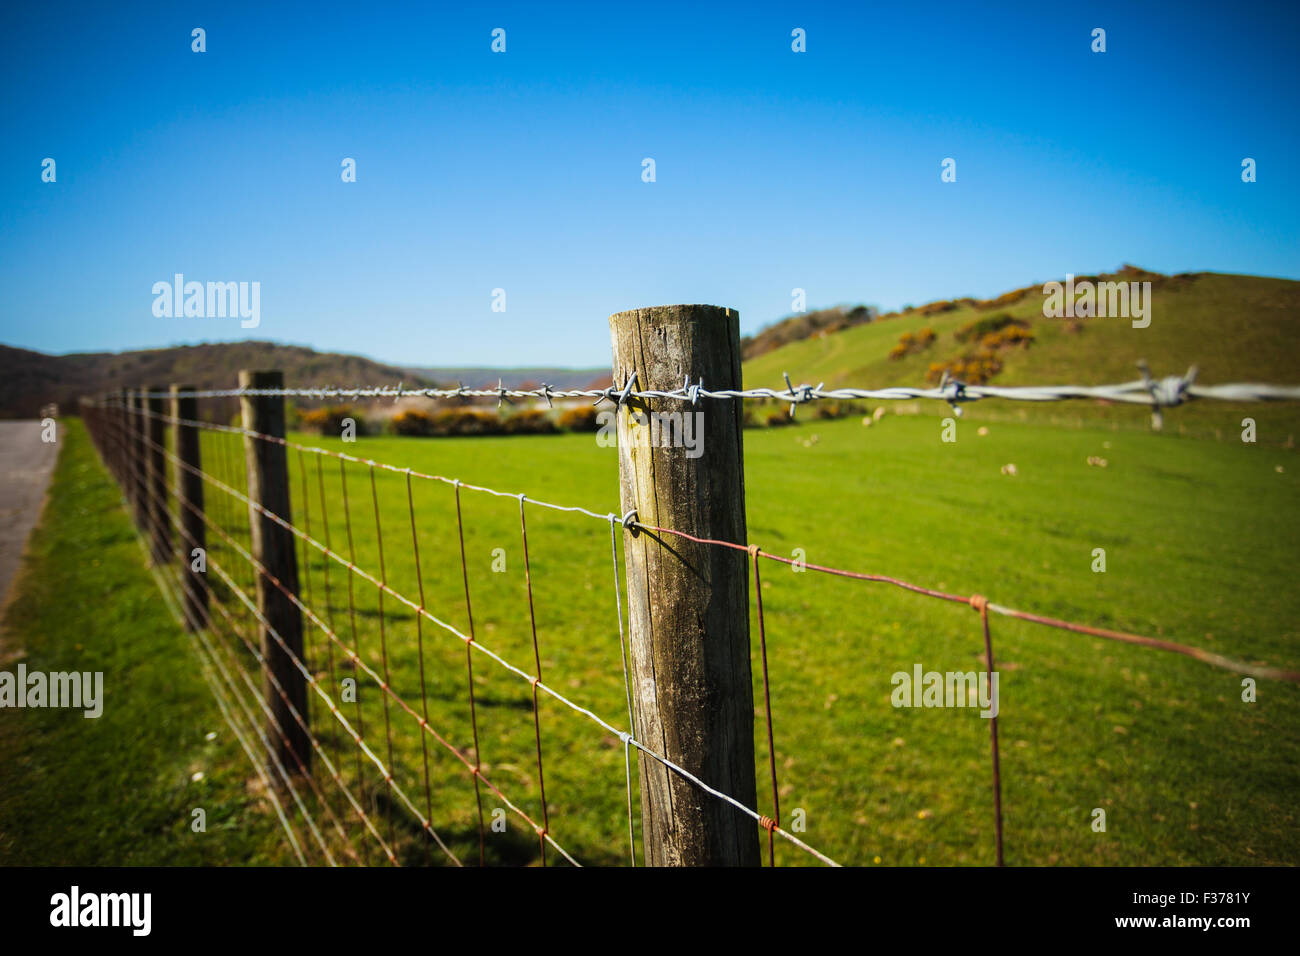 Barb wired fence in the countryside - Stock Image